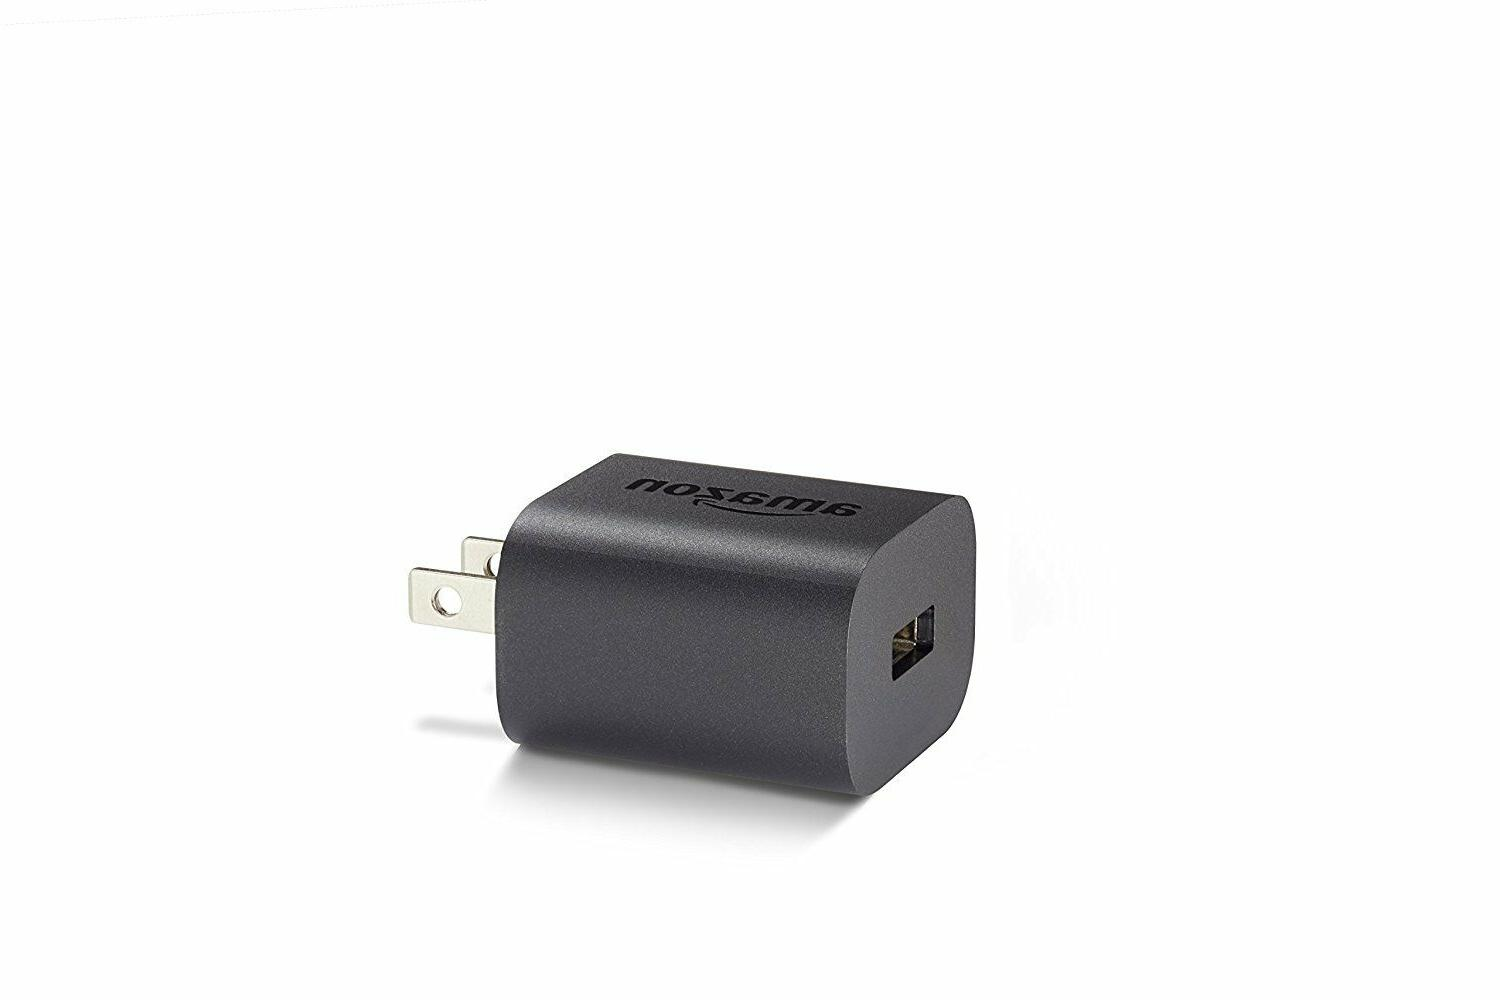 Amazon 5W USB Charger for Firestick,